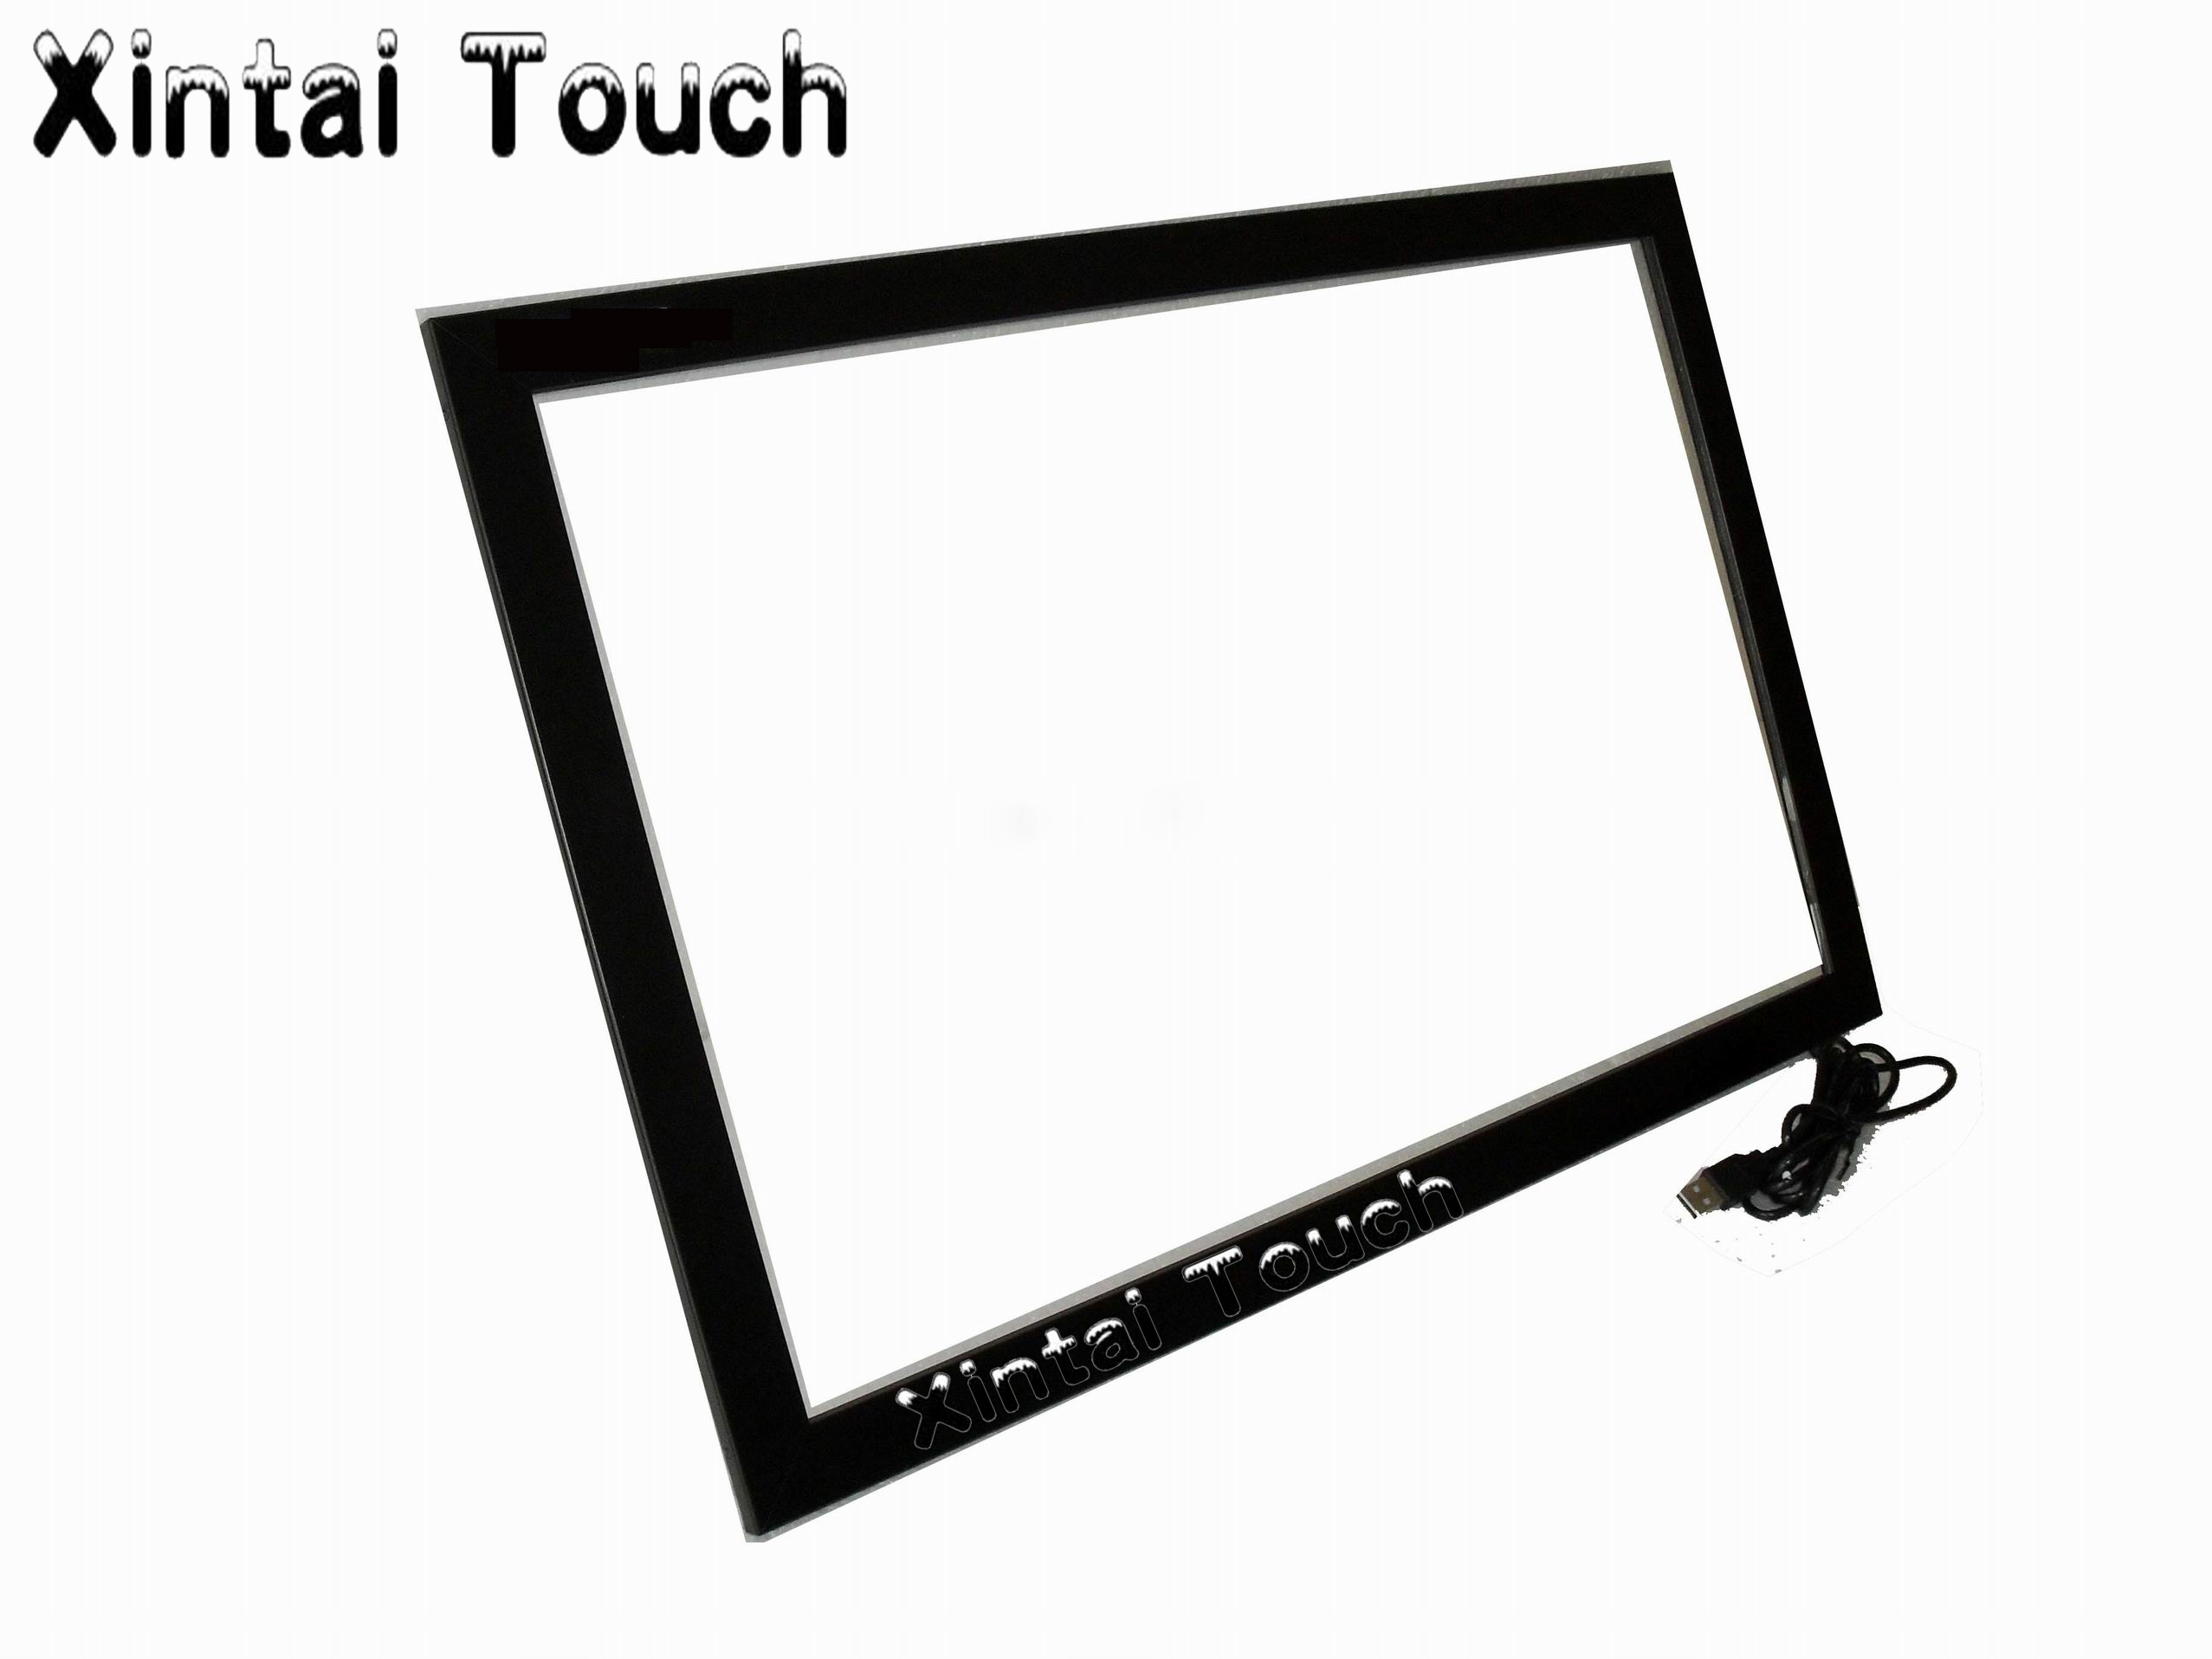 Free Shipping! 82 inch infrared Multi touch screen,10 touch points IR touch frame for smart tv,flat touch screen panel 19 inch ir touch screen frame truly 6 points infrared multi touch screen kit with usb interace driver free